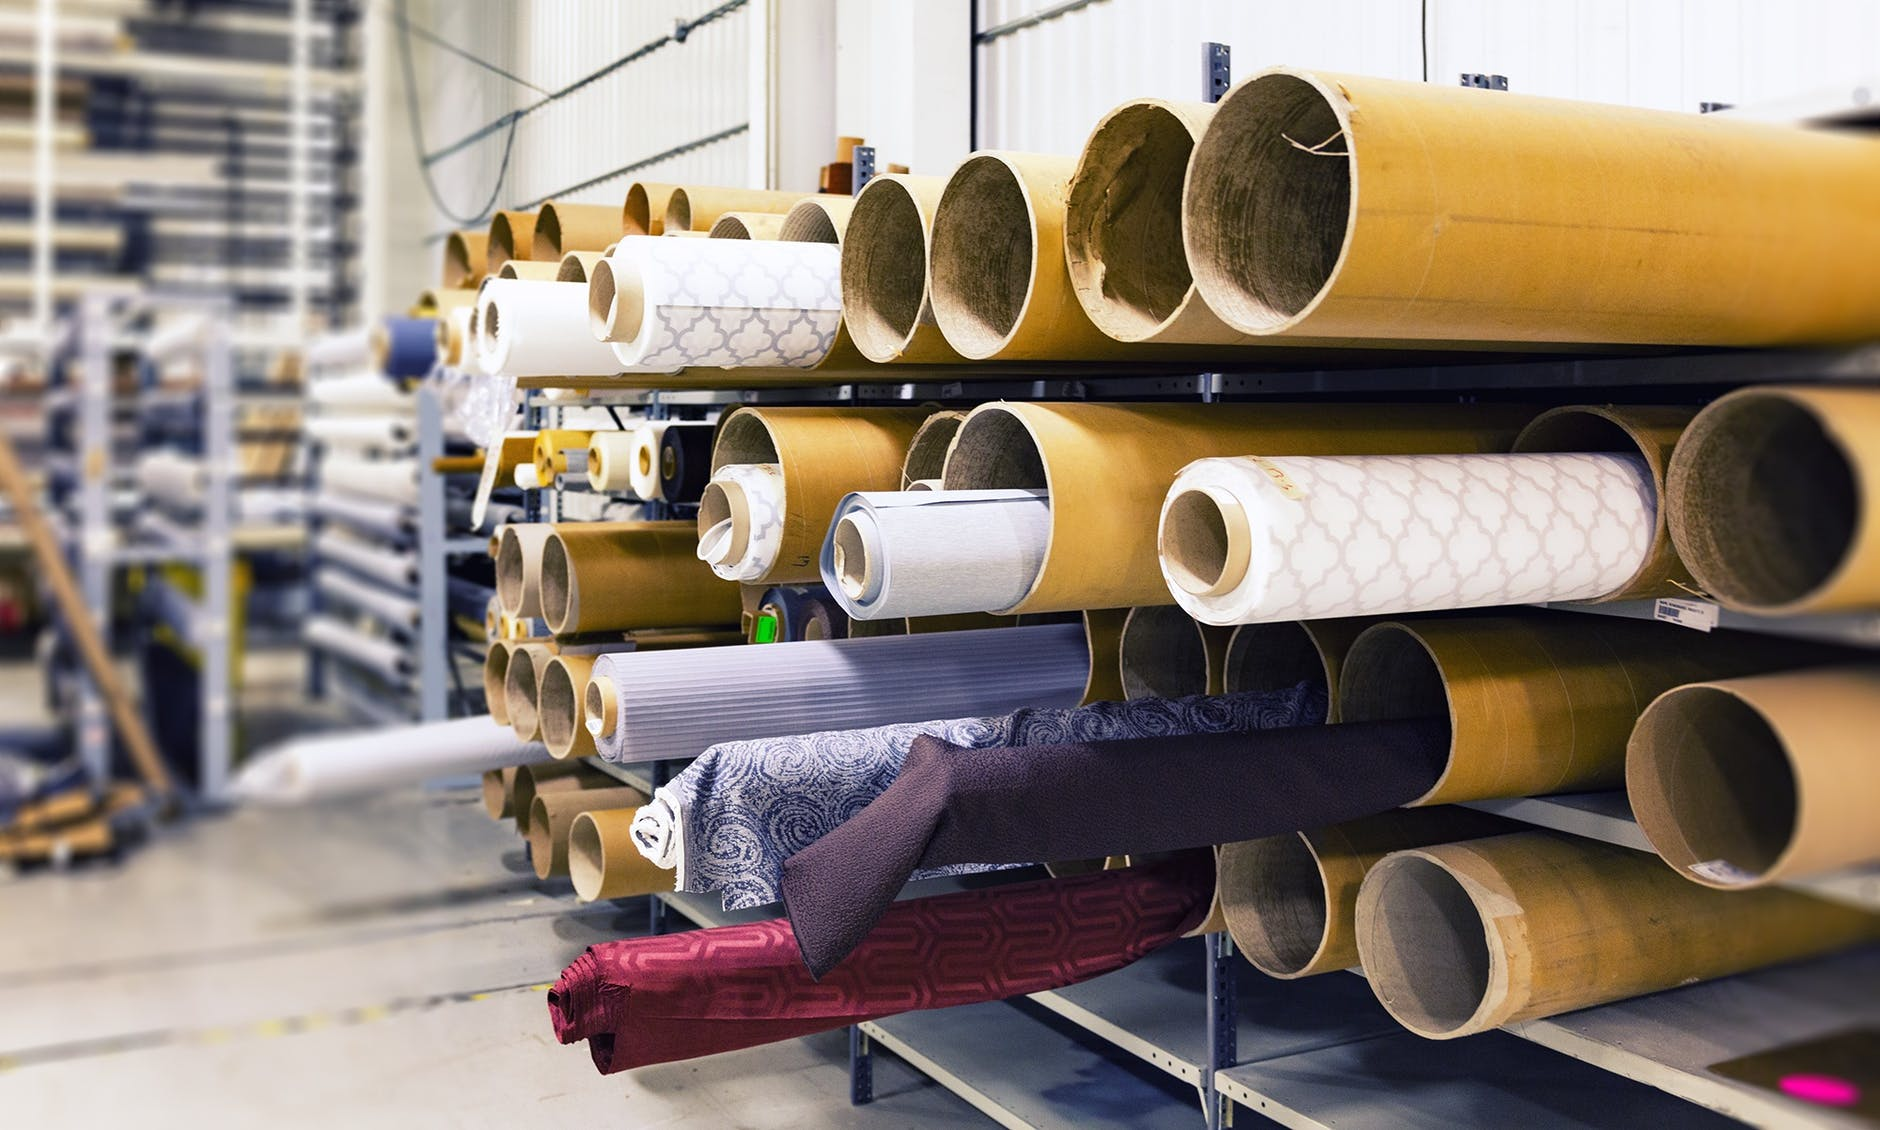 Types of Clothing Fabrics #1 Acetate | Types Of Clothing Fabrics To Add to Your Repertoire